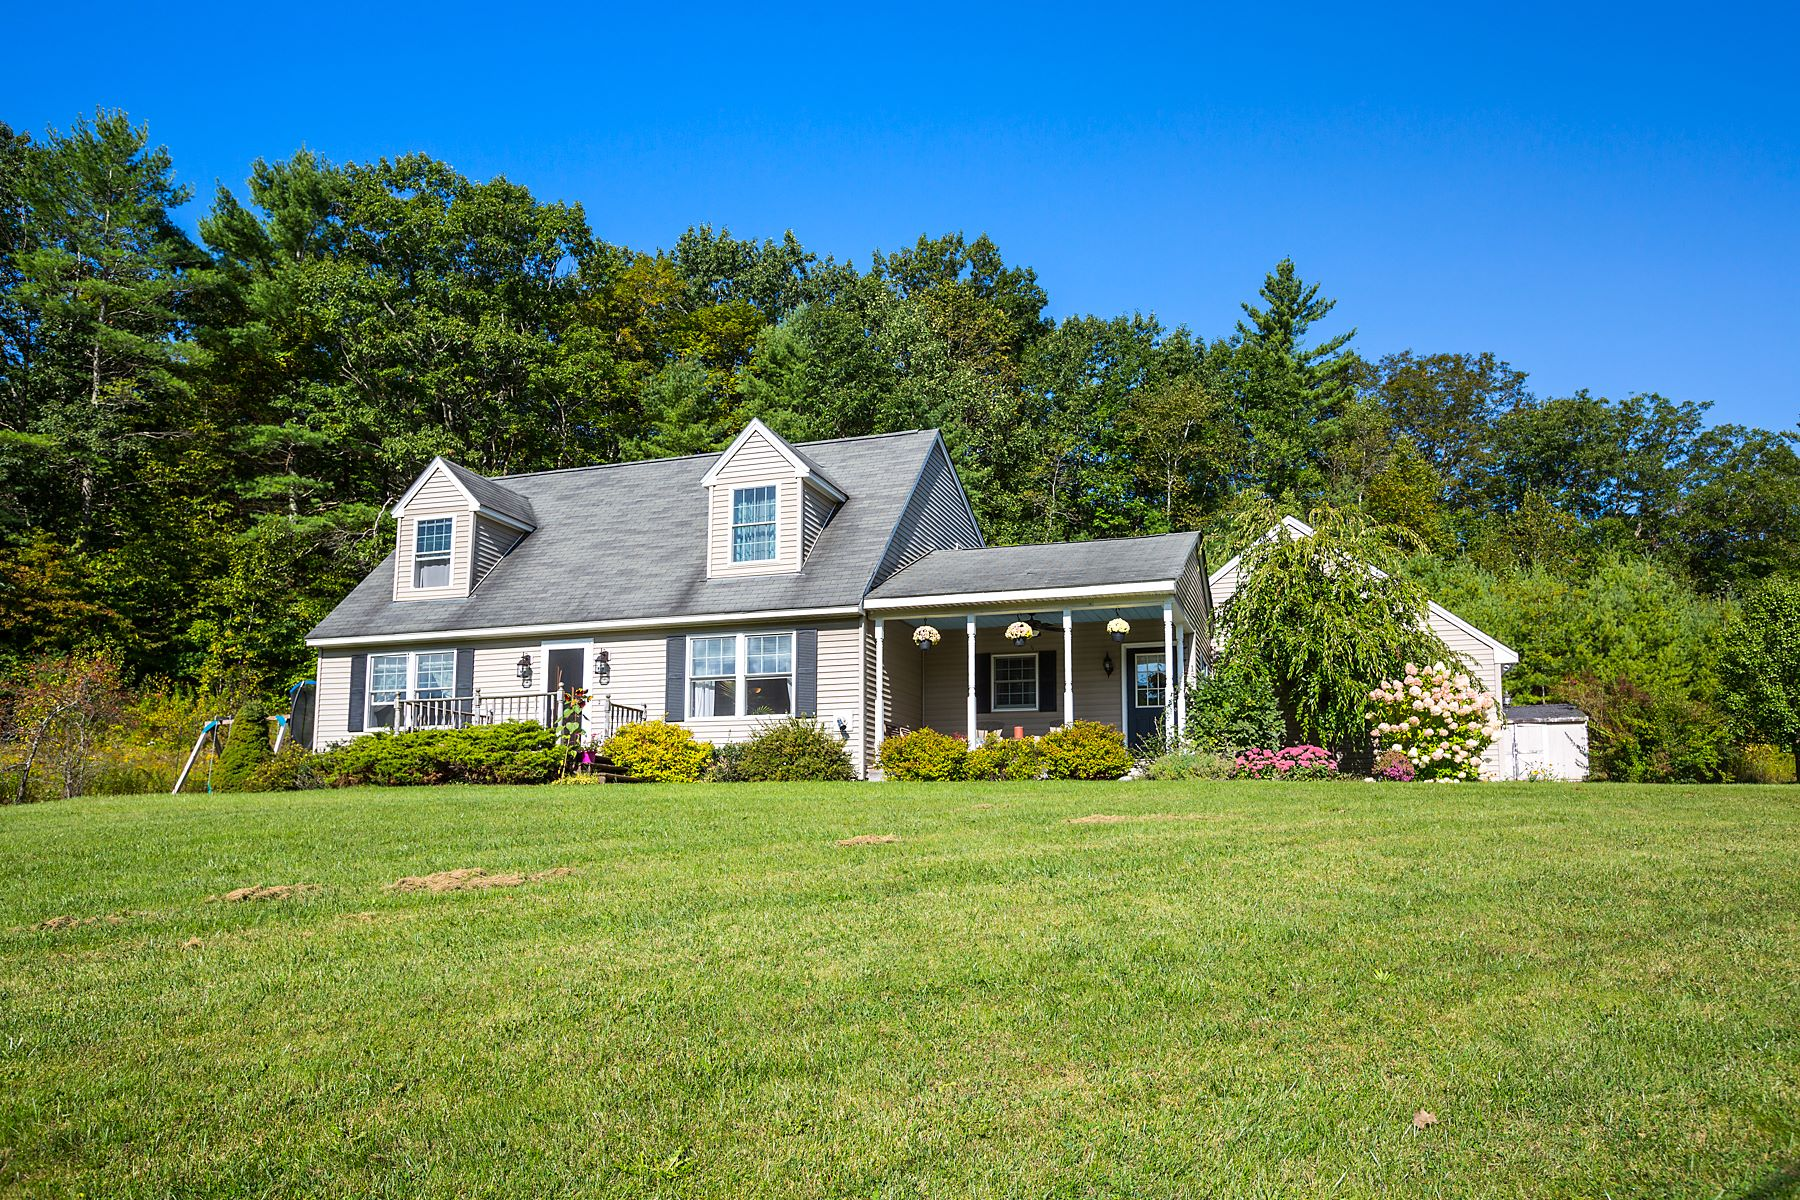 Single Family Homes for Sale at Cape on 2.24 Private Acres with Views! 157 Oak Hill Rd Shaftsbury, Vermont 05262 United States